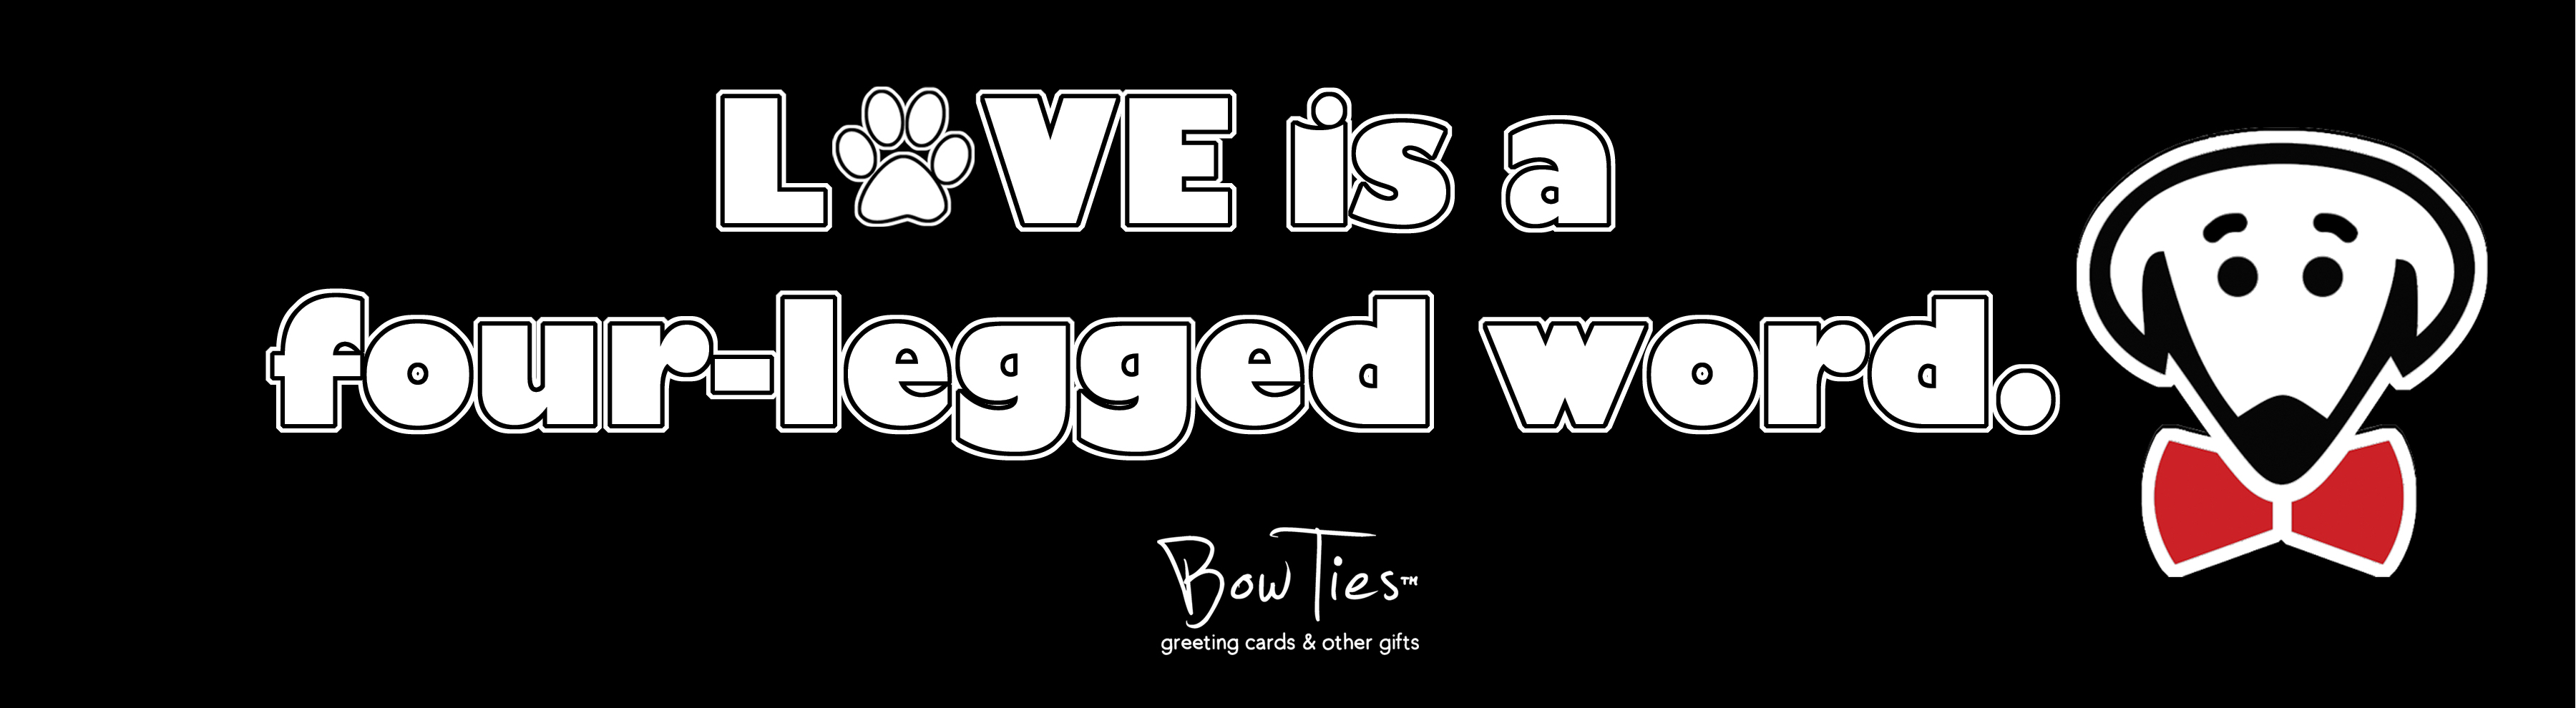 Love is a four-legged word. – sticker